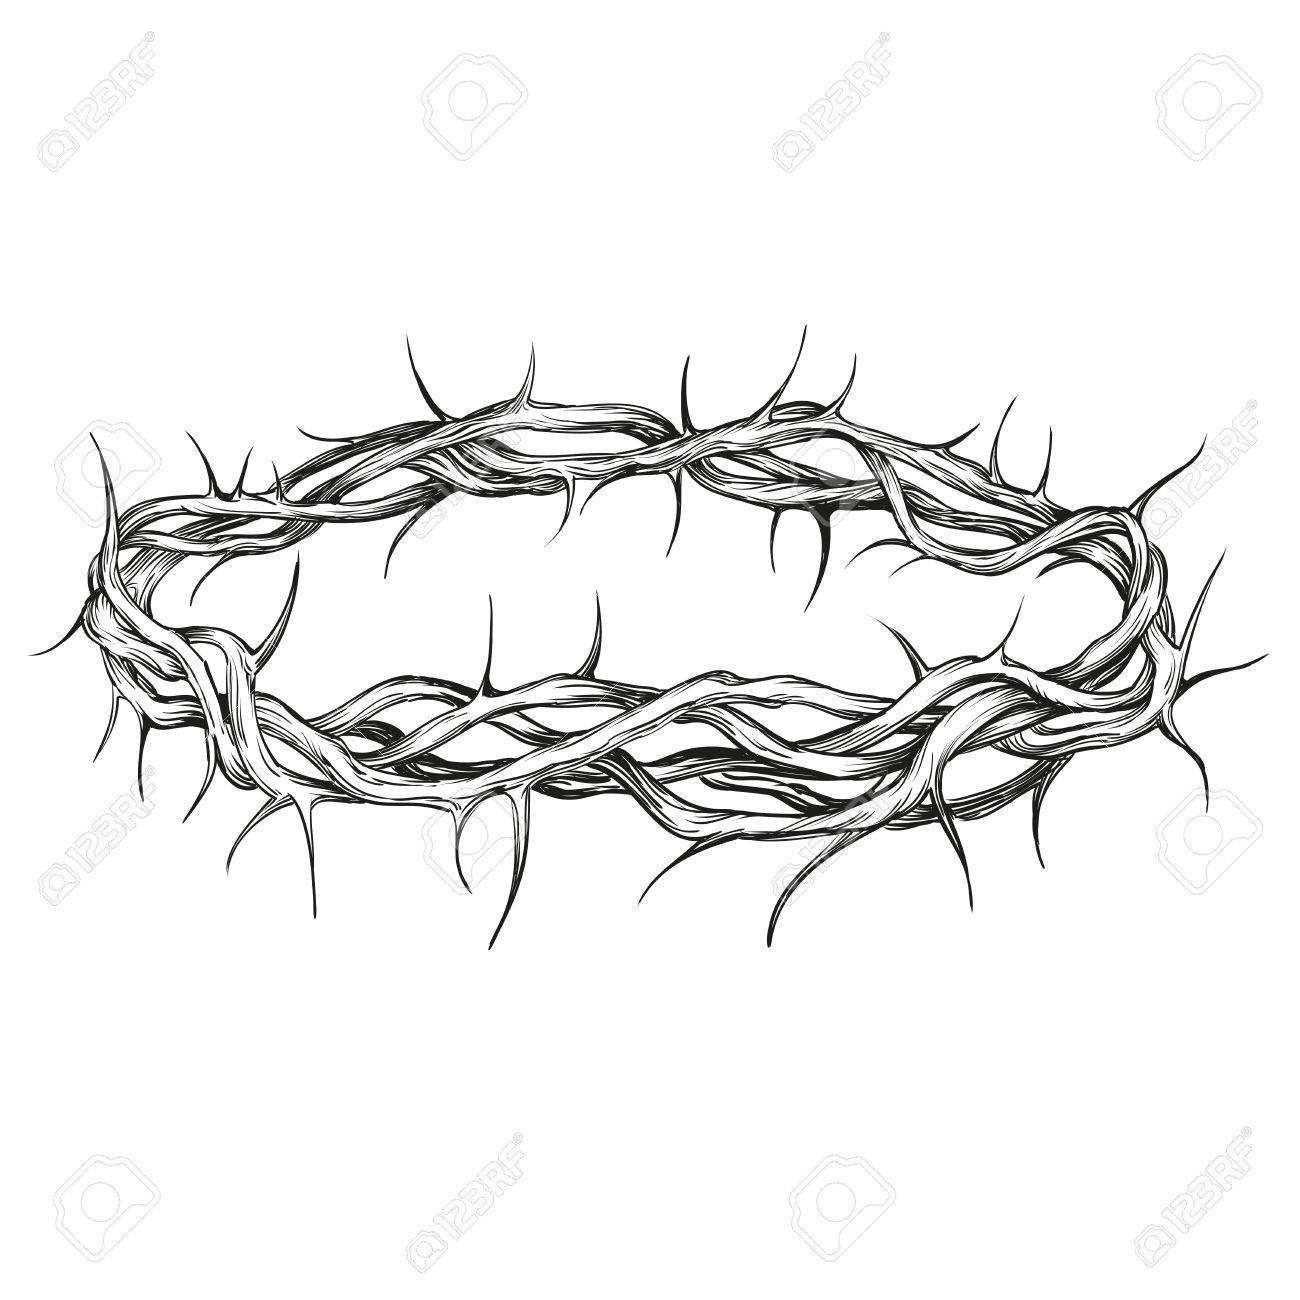 crown of thorns religious symbol hand drawn vector illustration sketch - 53023695